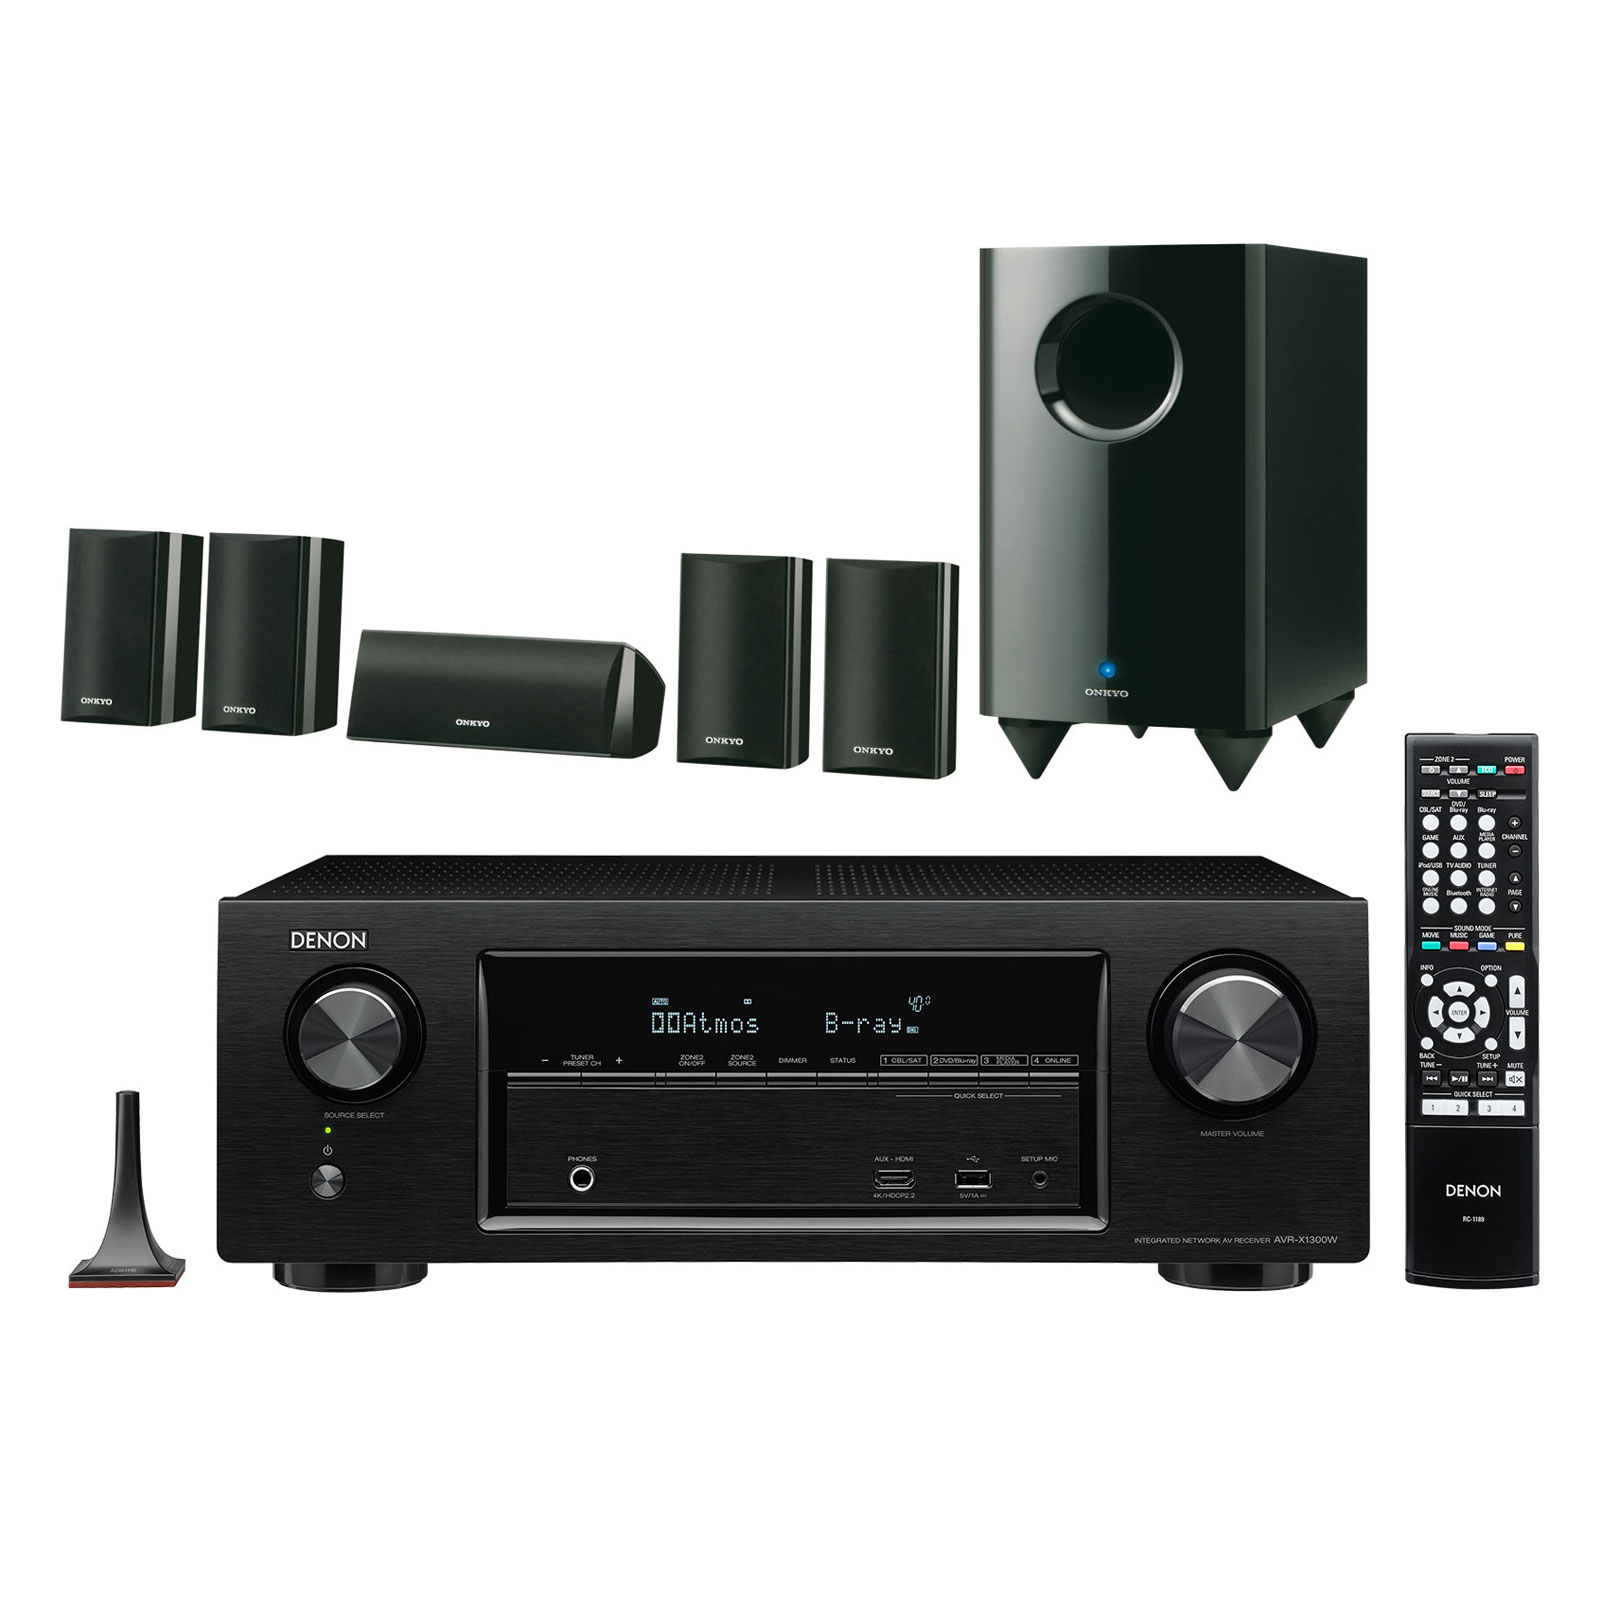 denon avr x1300w noir onkyo sks ht528 ensemble home cin ma denon sur. Black Bedroom Furniture Sets. Home Design Ideas